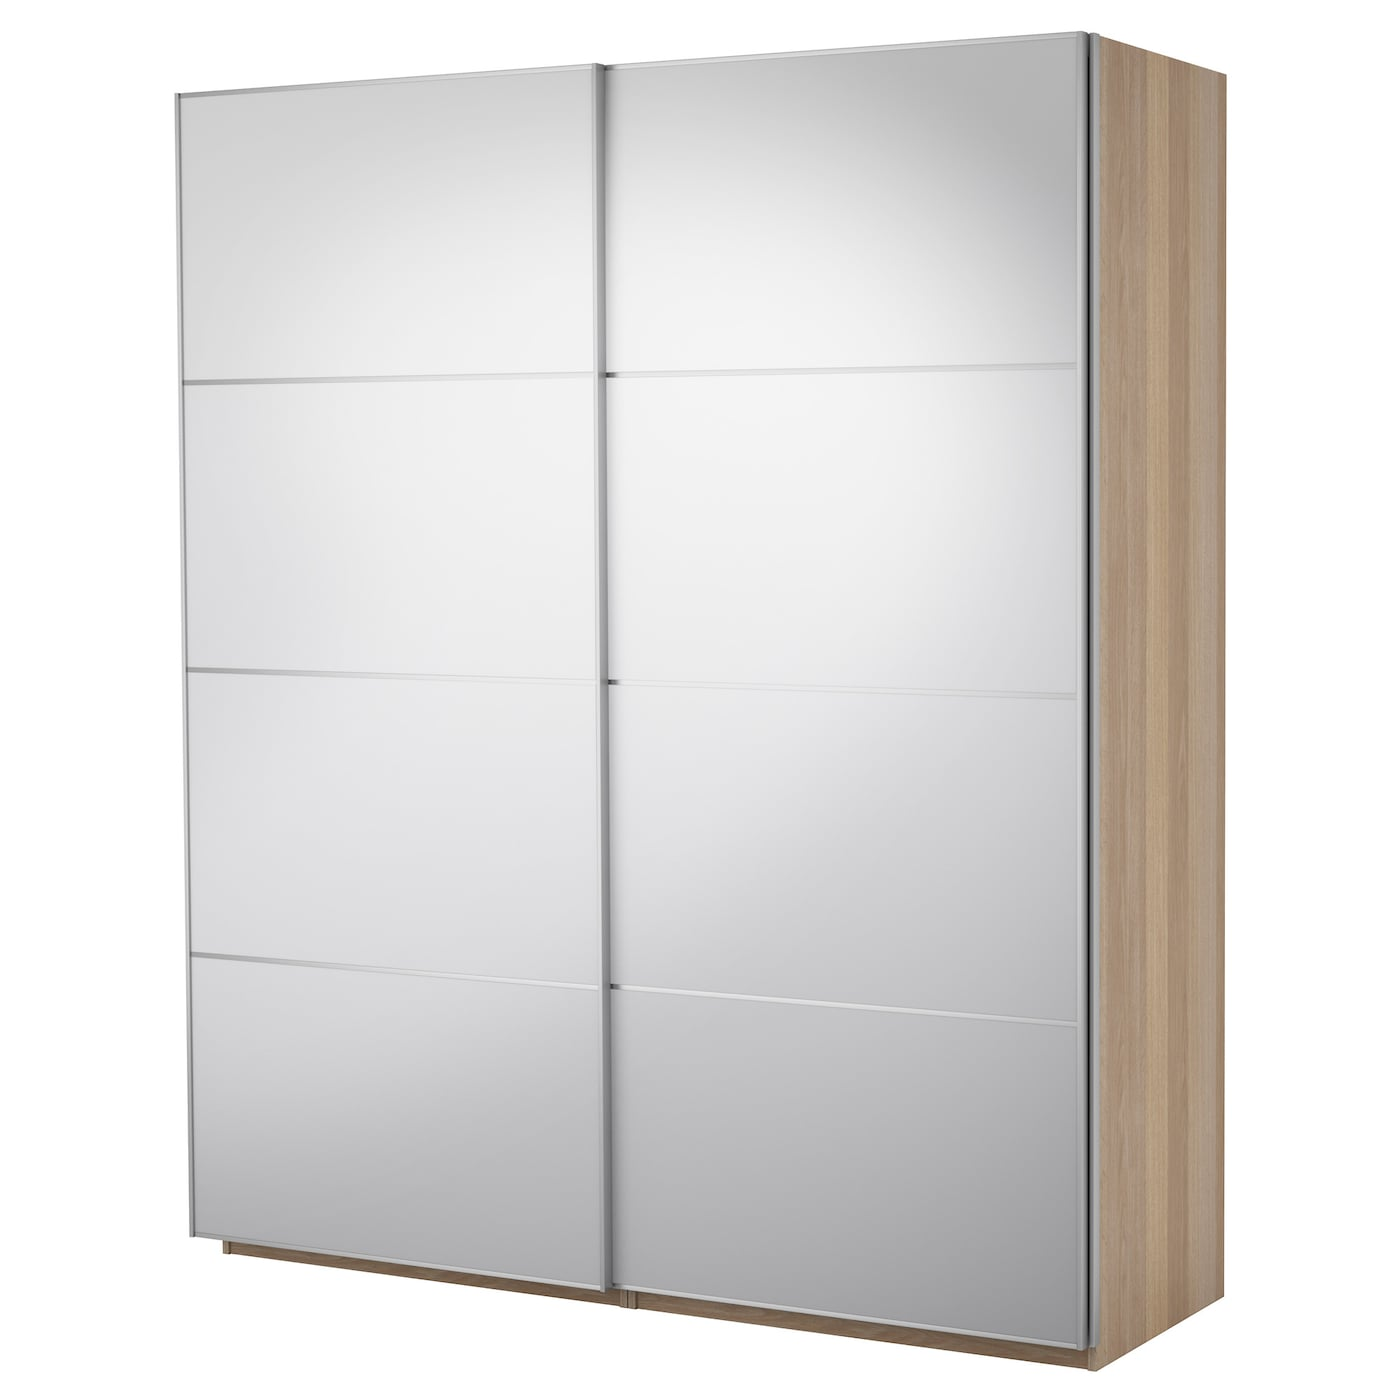 pax wardrobe with sliding doors white stained oak effect. Black Bedroom Furniture Sets. Home Design Ideas